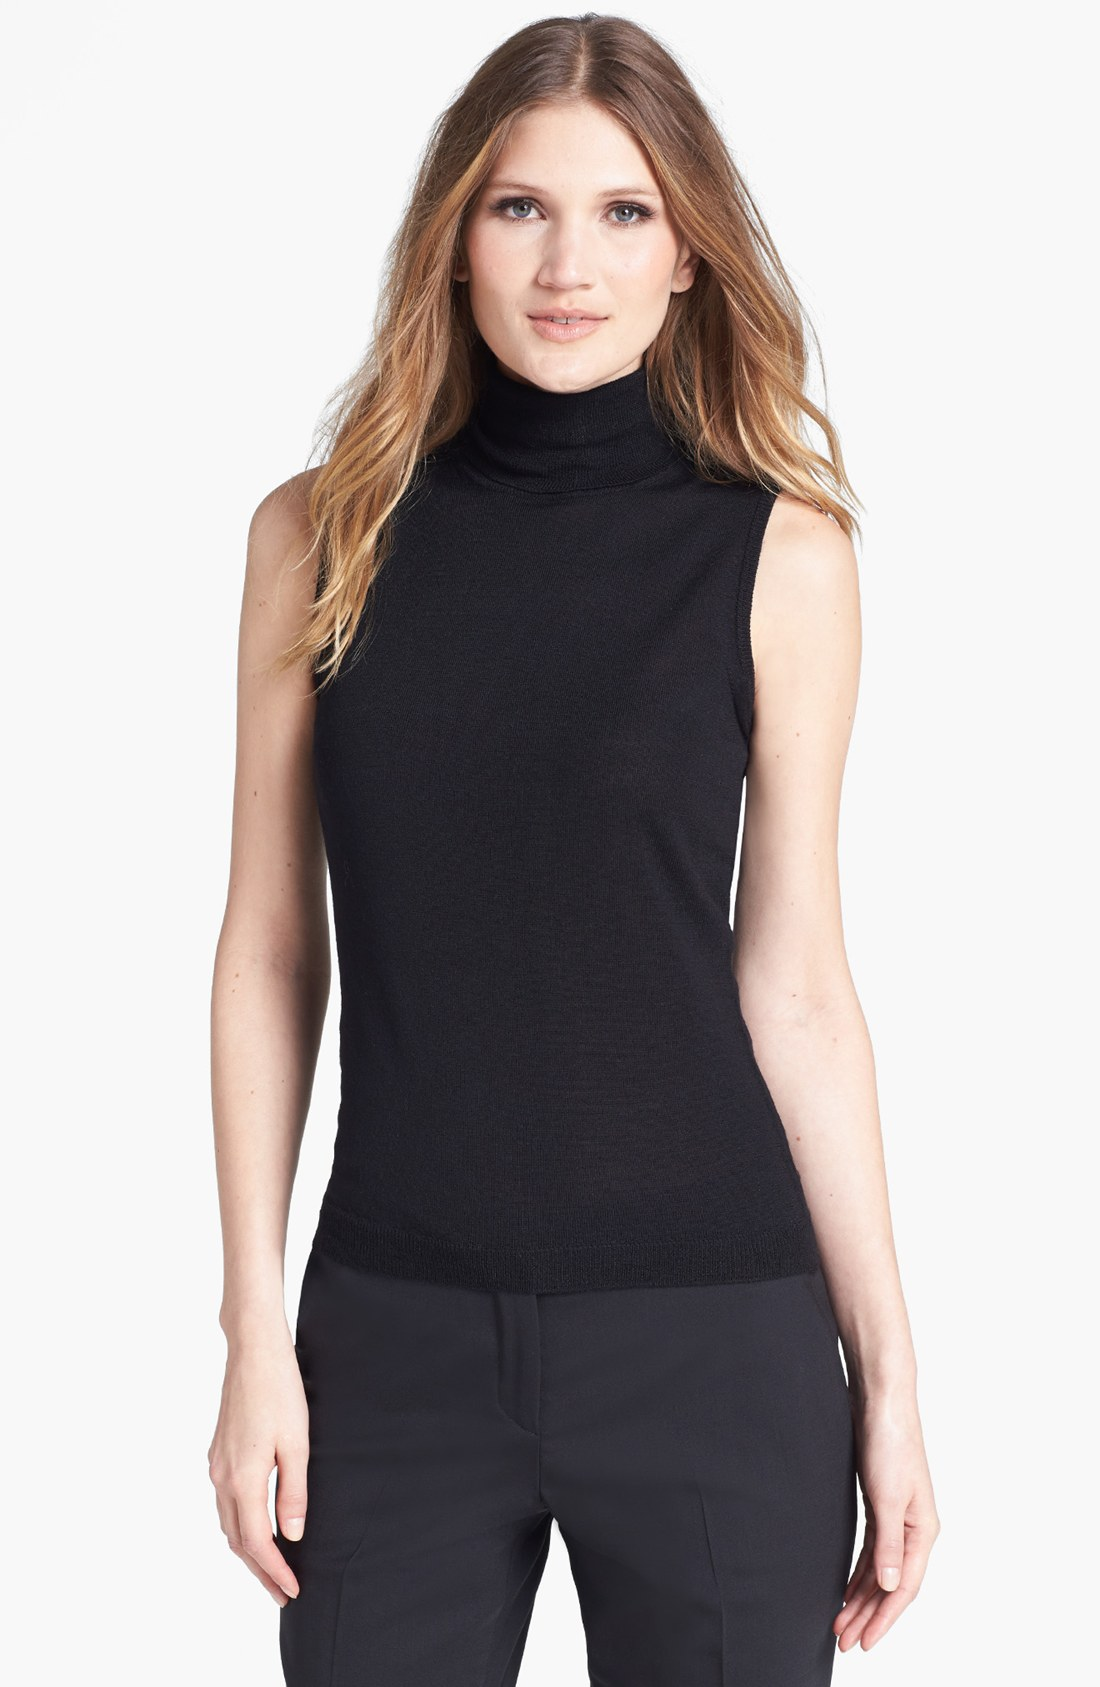 Ralph Lauren Winter Turtleneck Merino Wool Shirt Size XL New With Tags. No noticeable issues. Free returns and full refund up to 60 days if you're unhappy with the shirt.